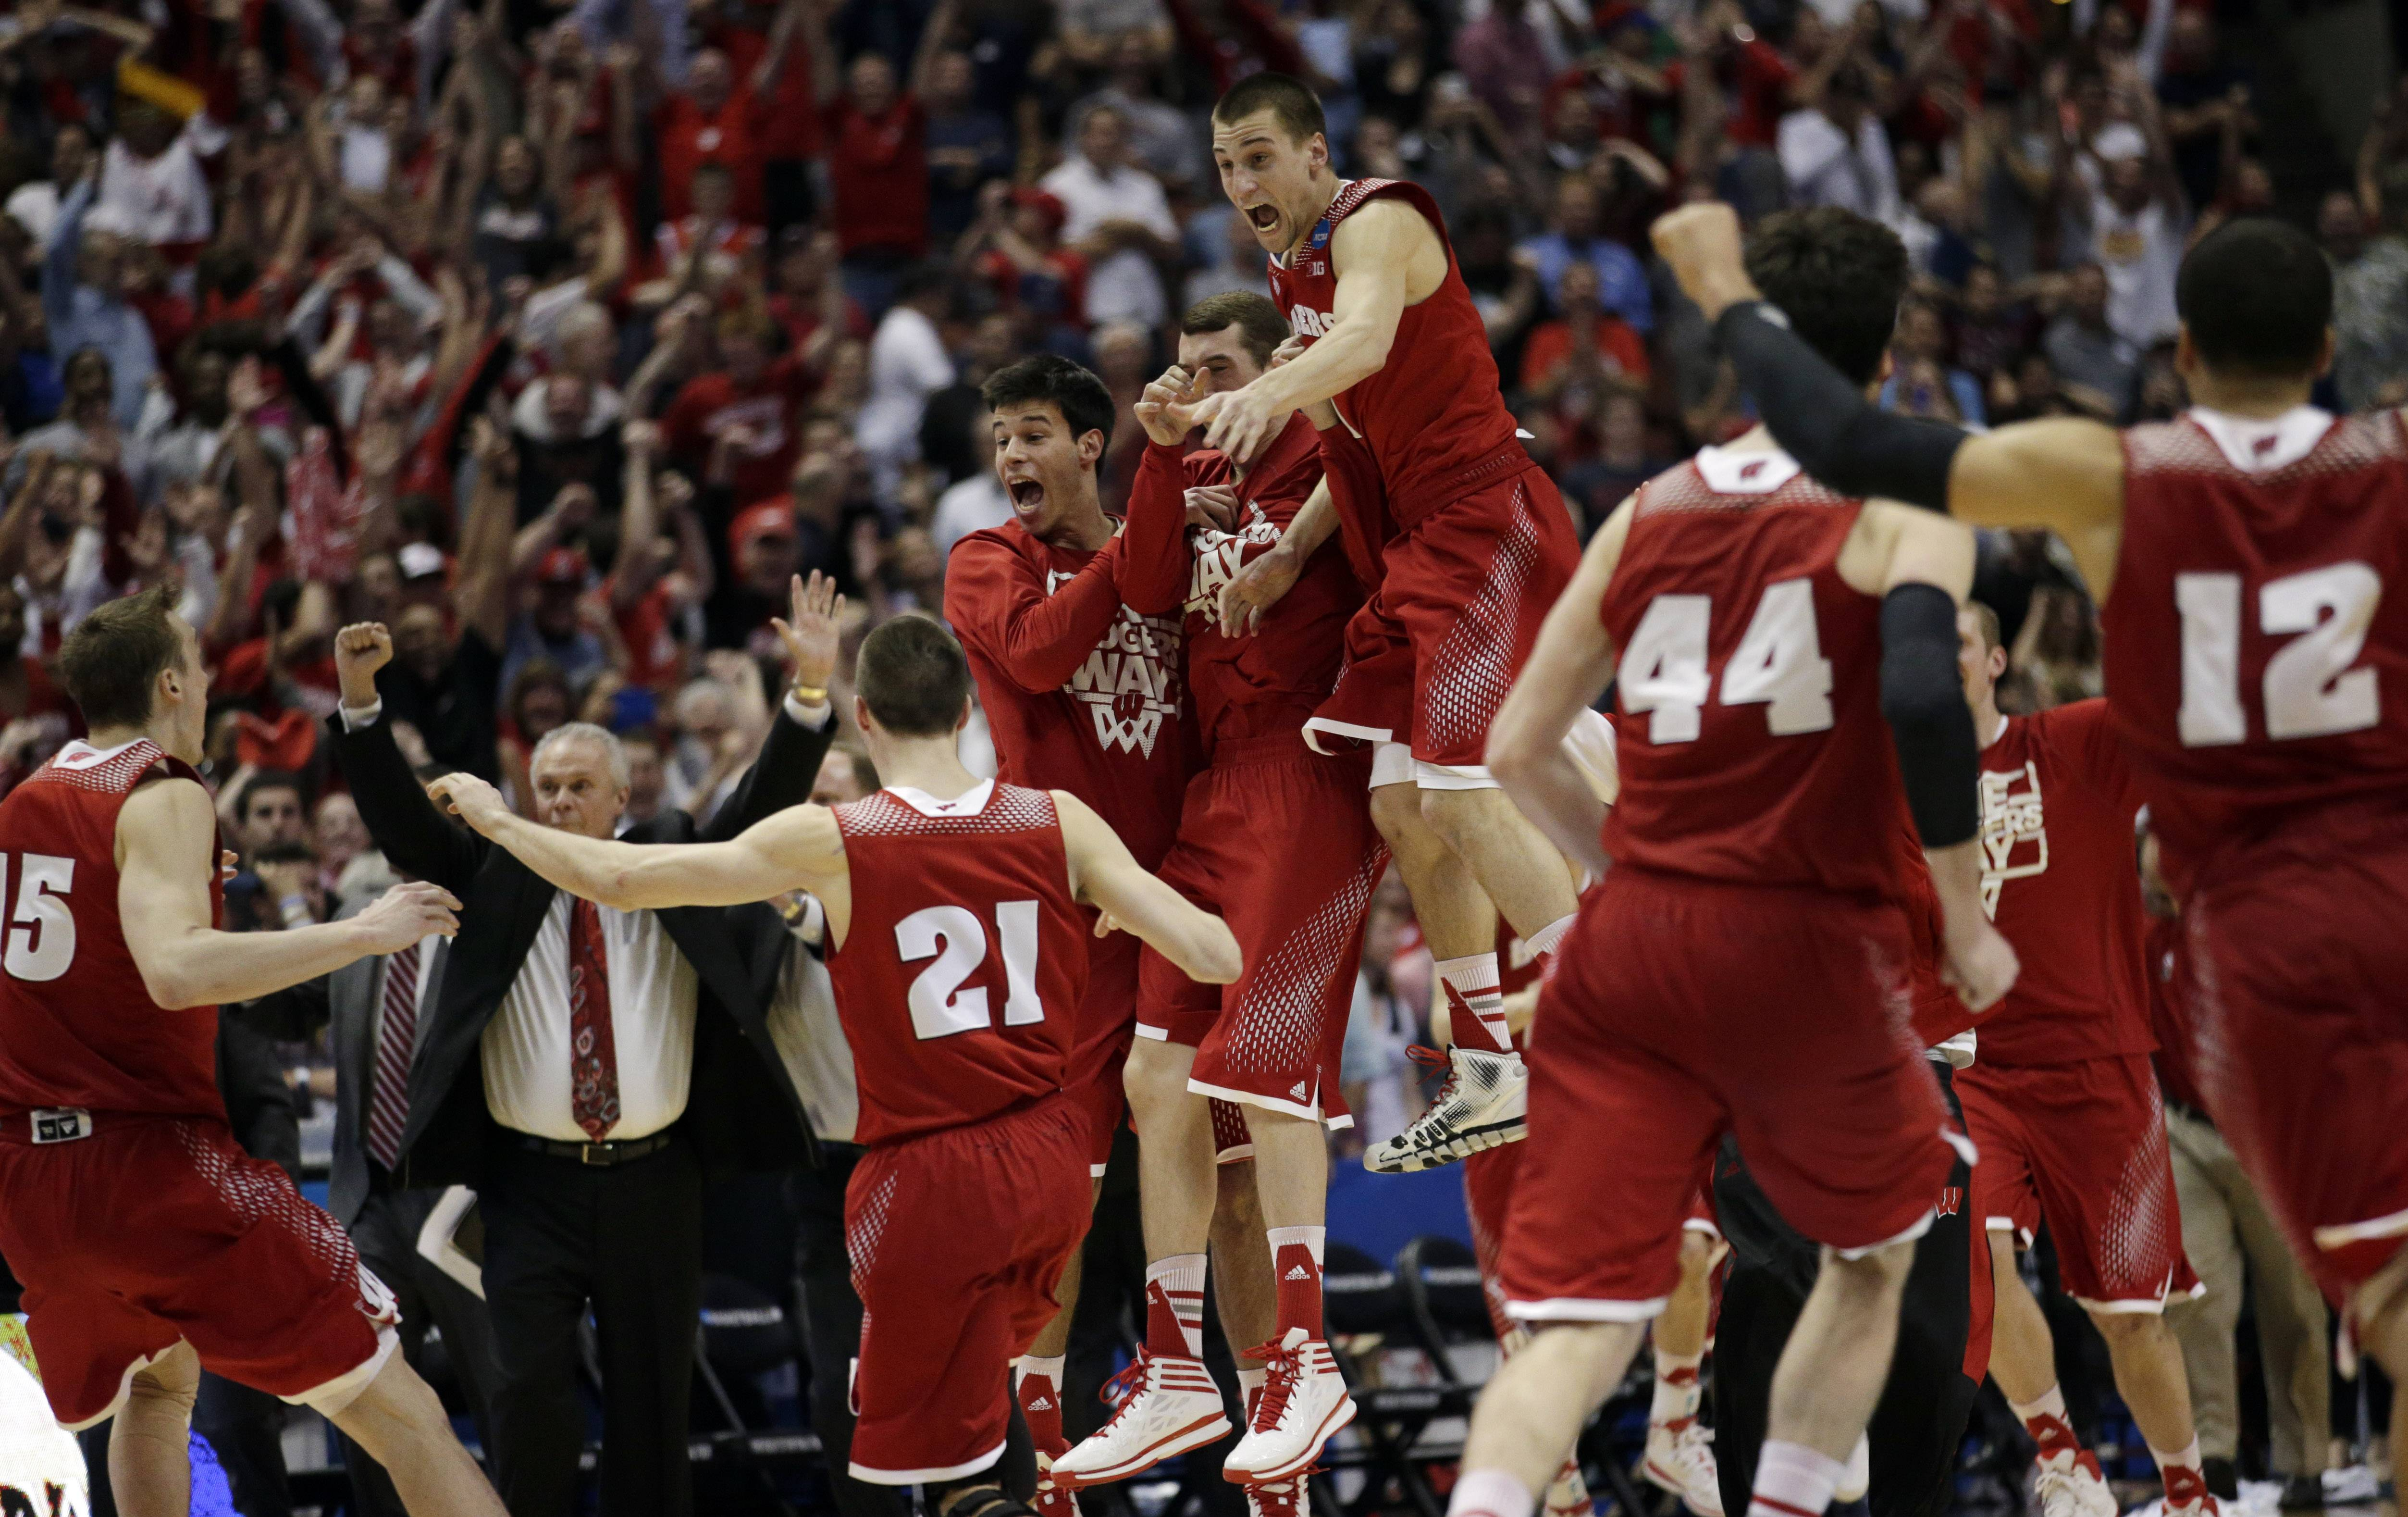 Wisconsin players react as time runs out in overtime in their regional final NCAA college basketball tournament game.